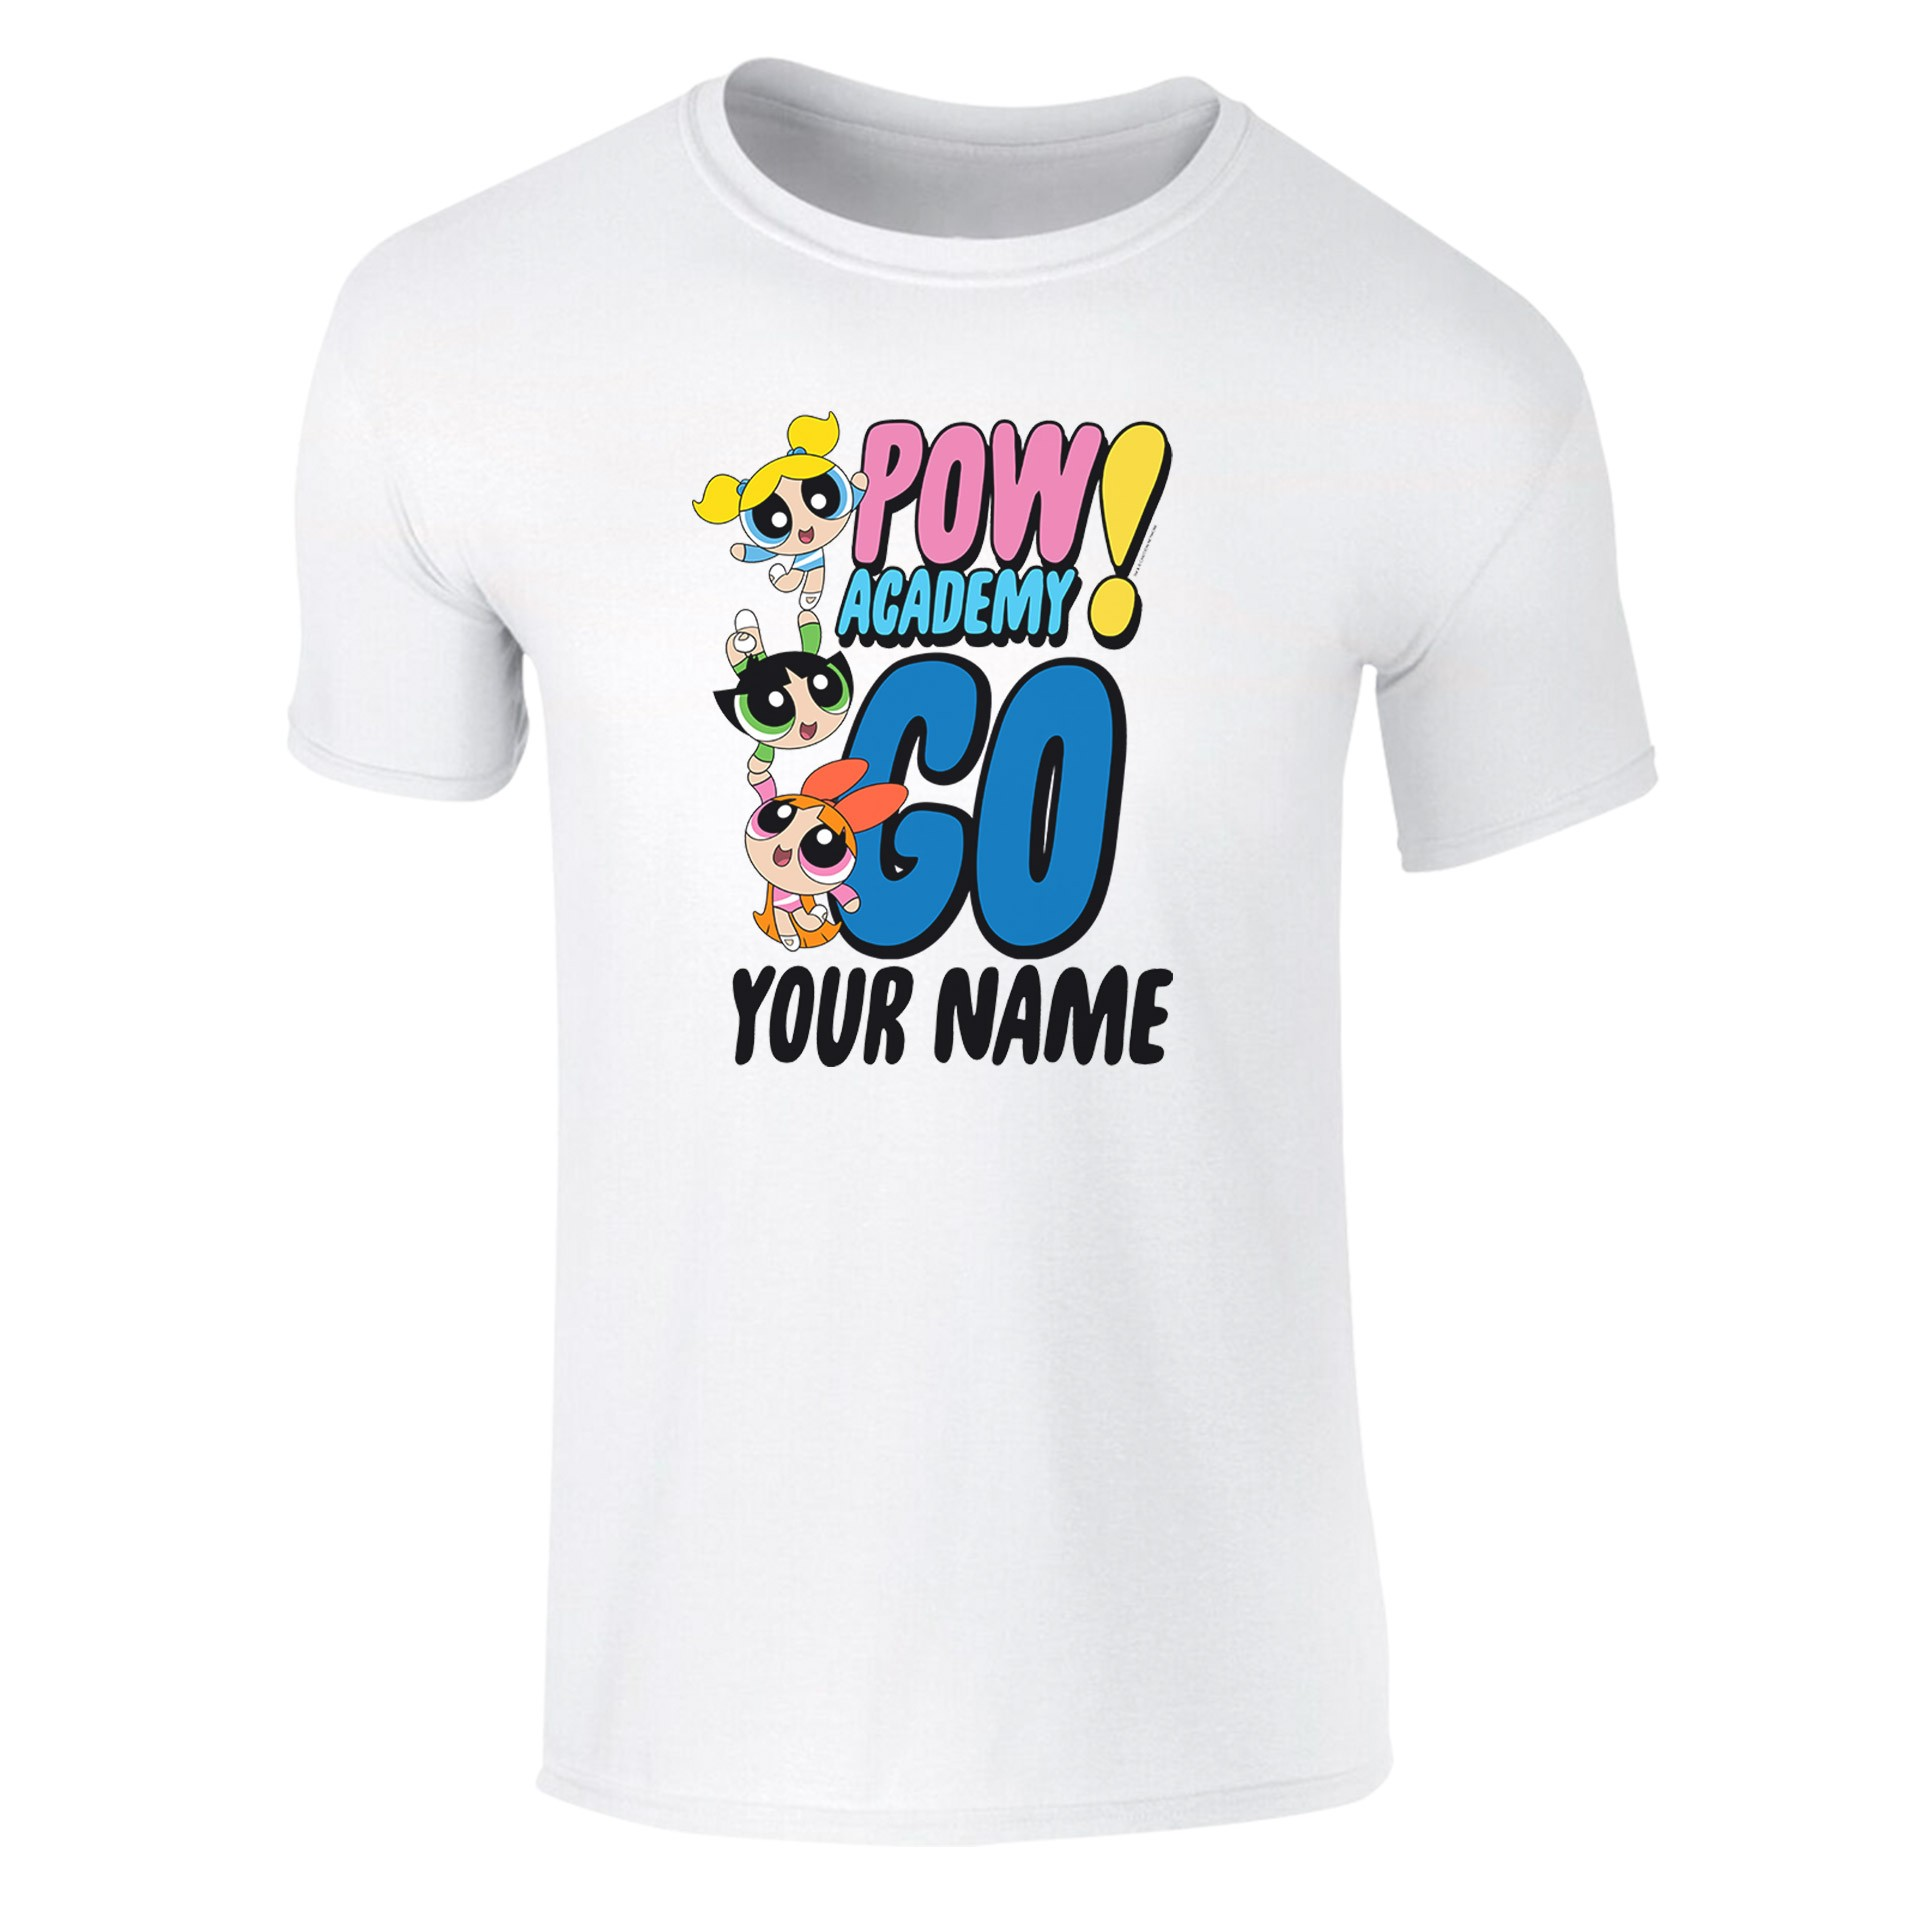 Powerpuff Girls Pow Academy Go Kids T-Shirt